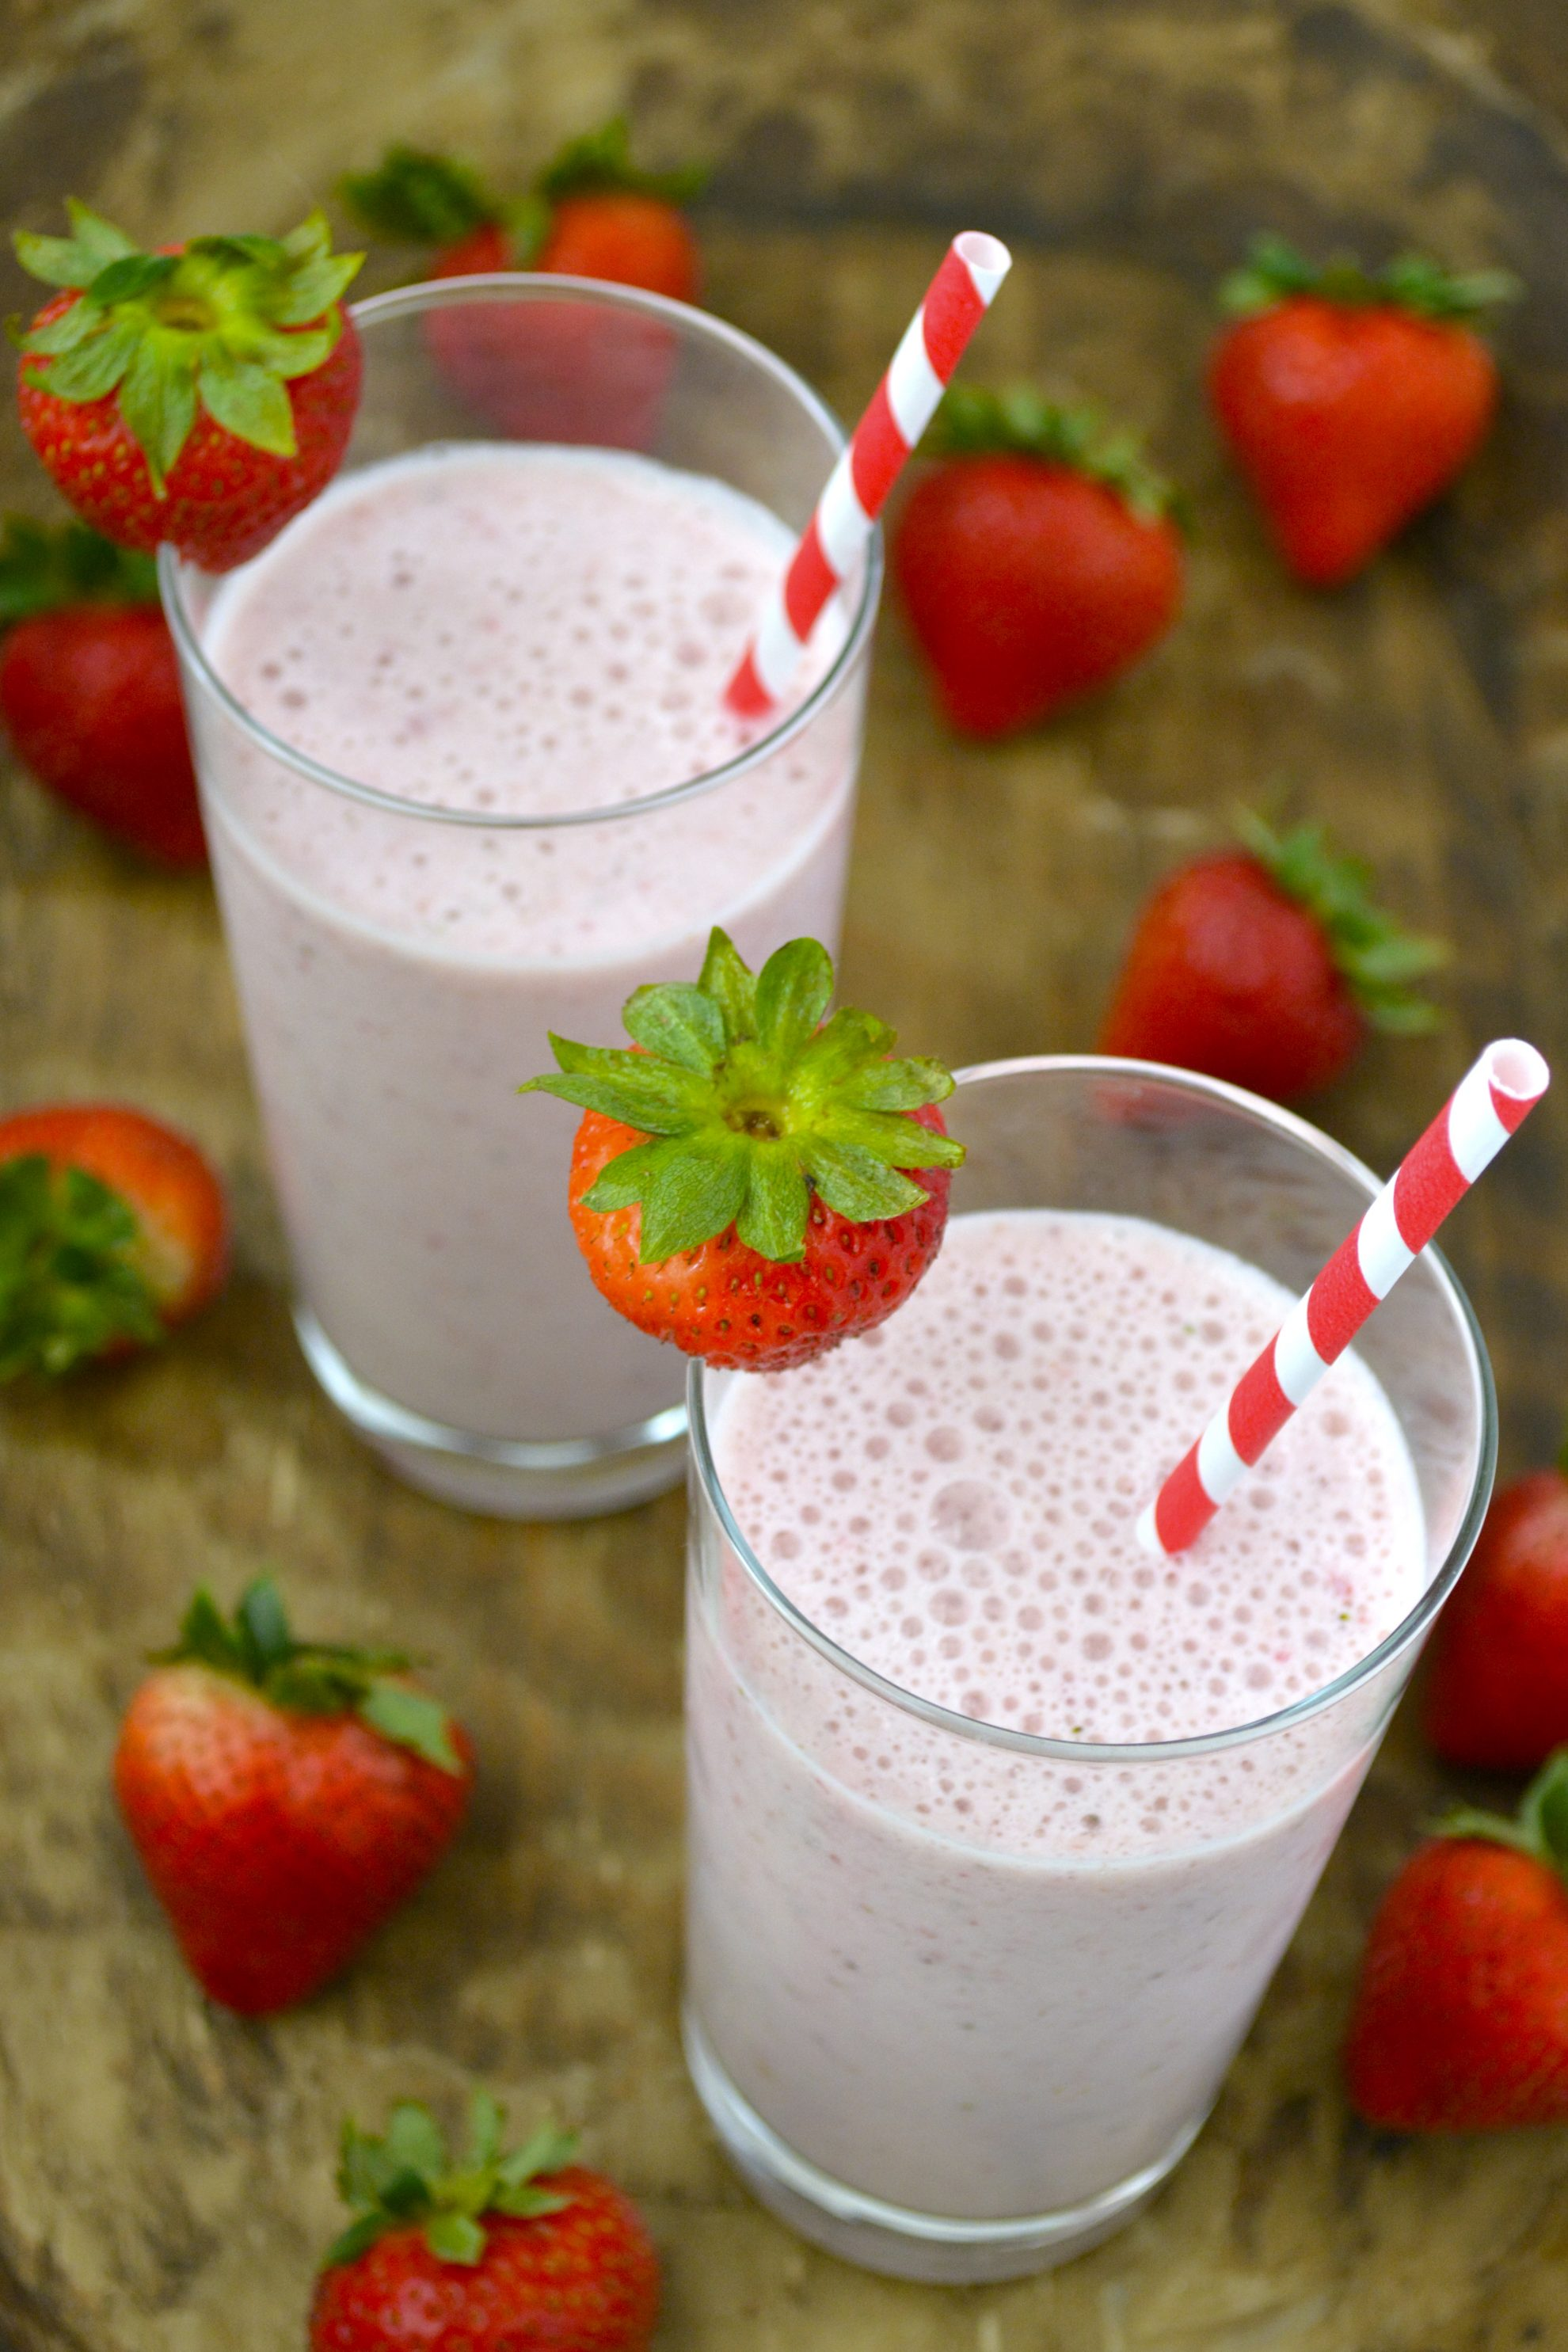 two glasses of homemade strawberry milk